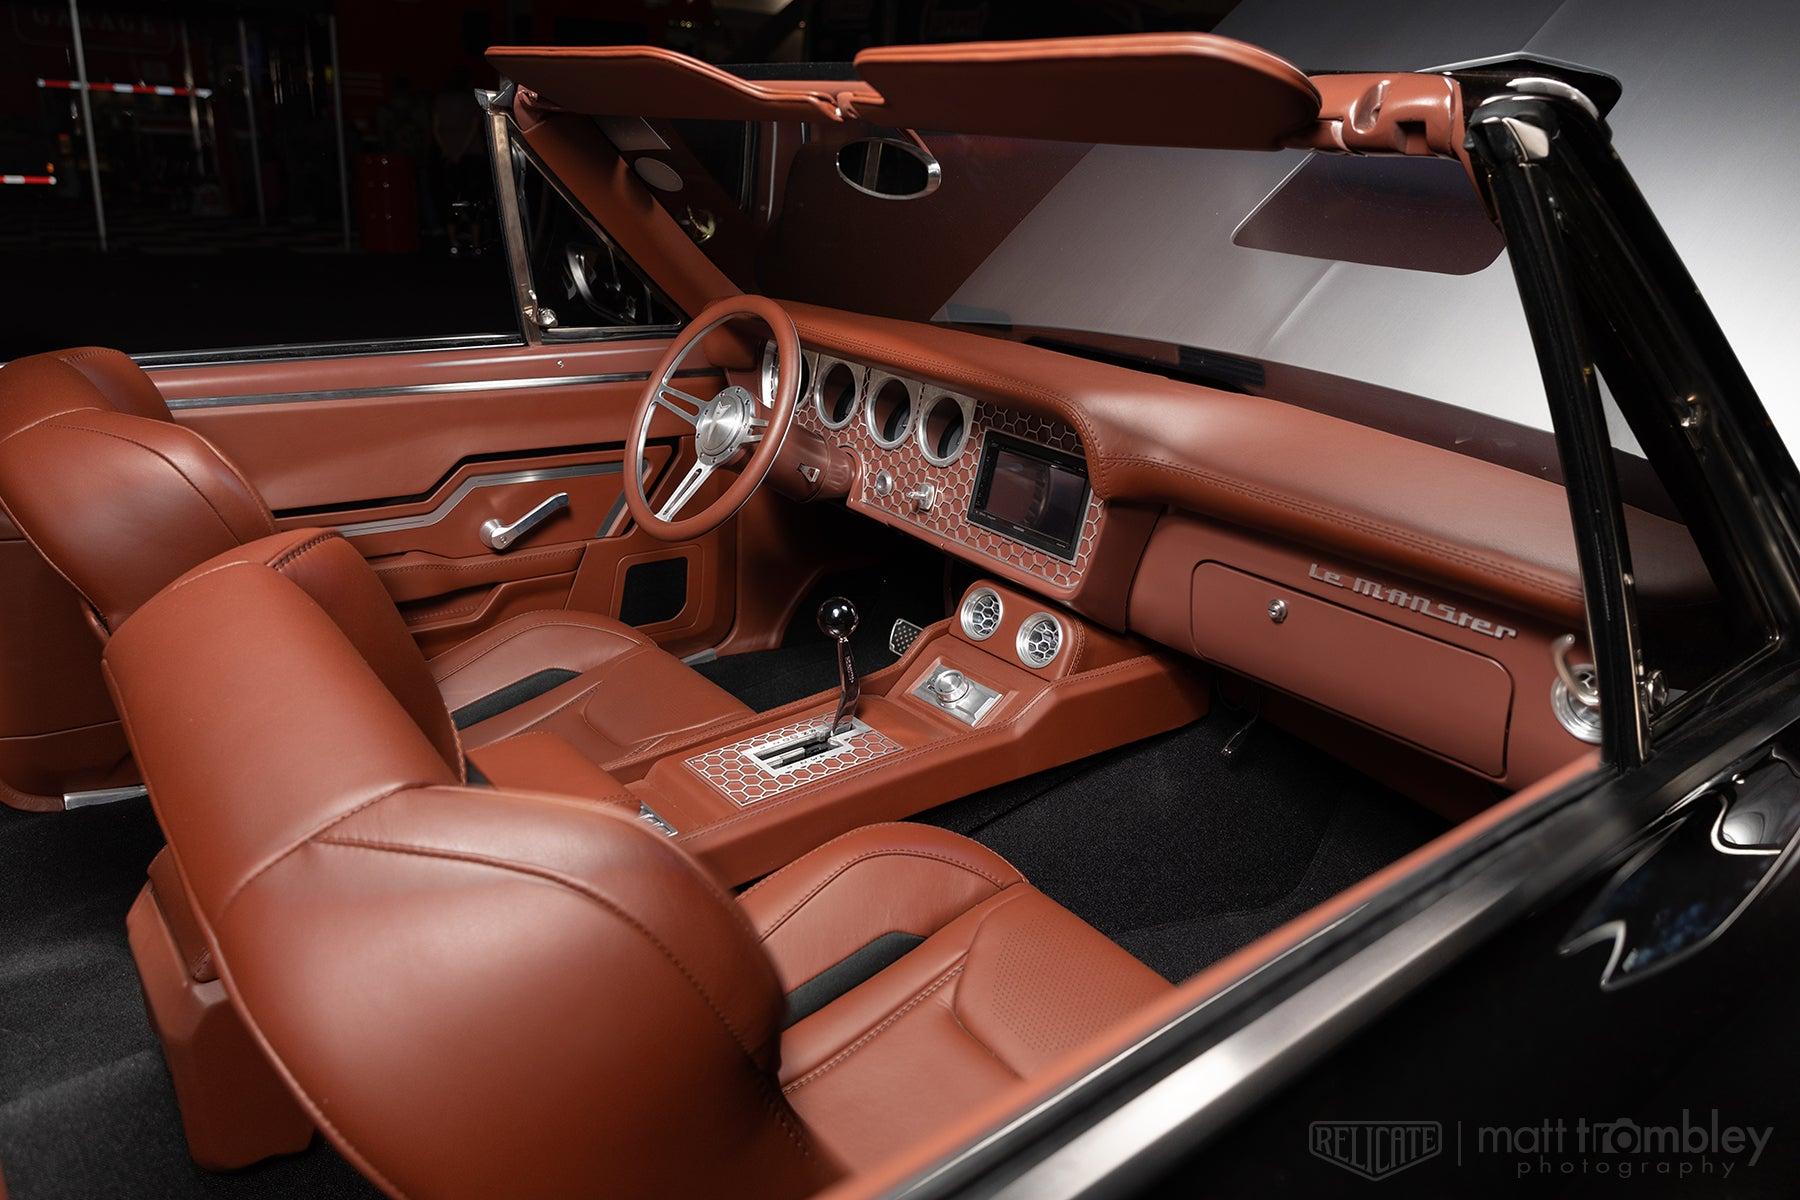 1966 Pontiac Lemans Convertible Relicate Full Grain Millbrook interior Bux Customs Sema 2019